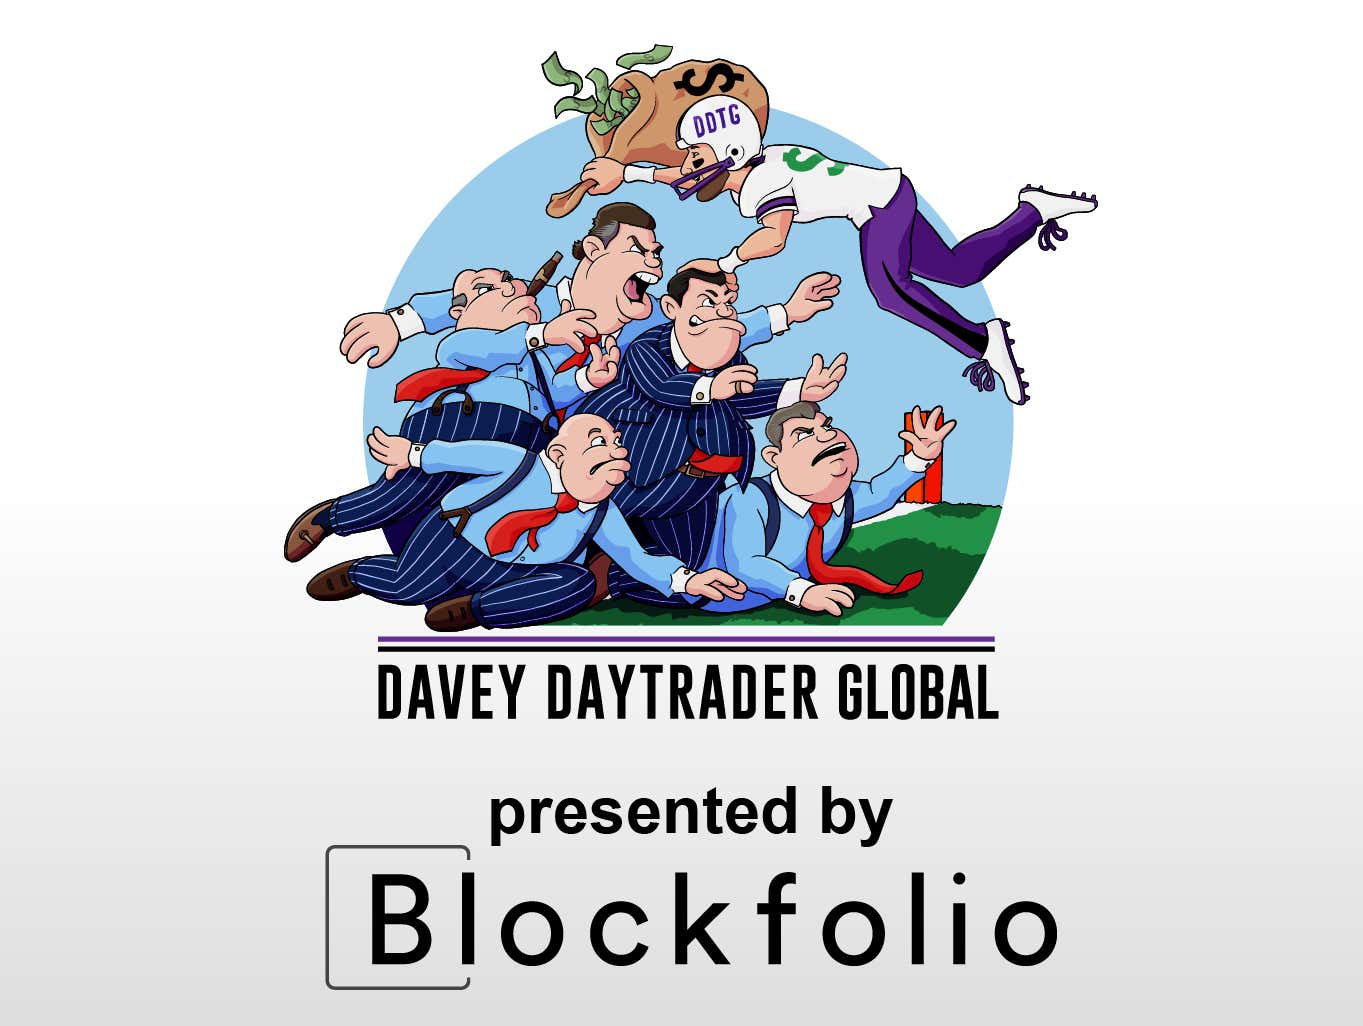 Davey Day Trader presented by Blockfolio - April 20, 2021